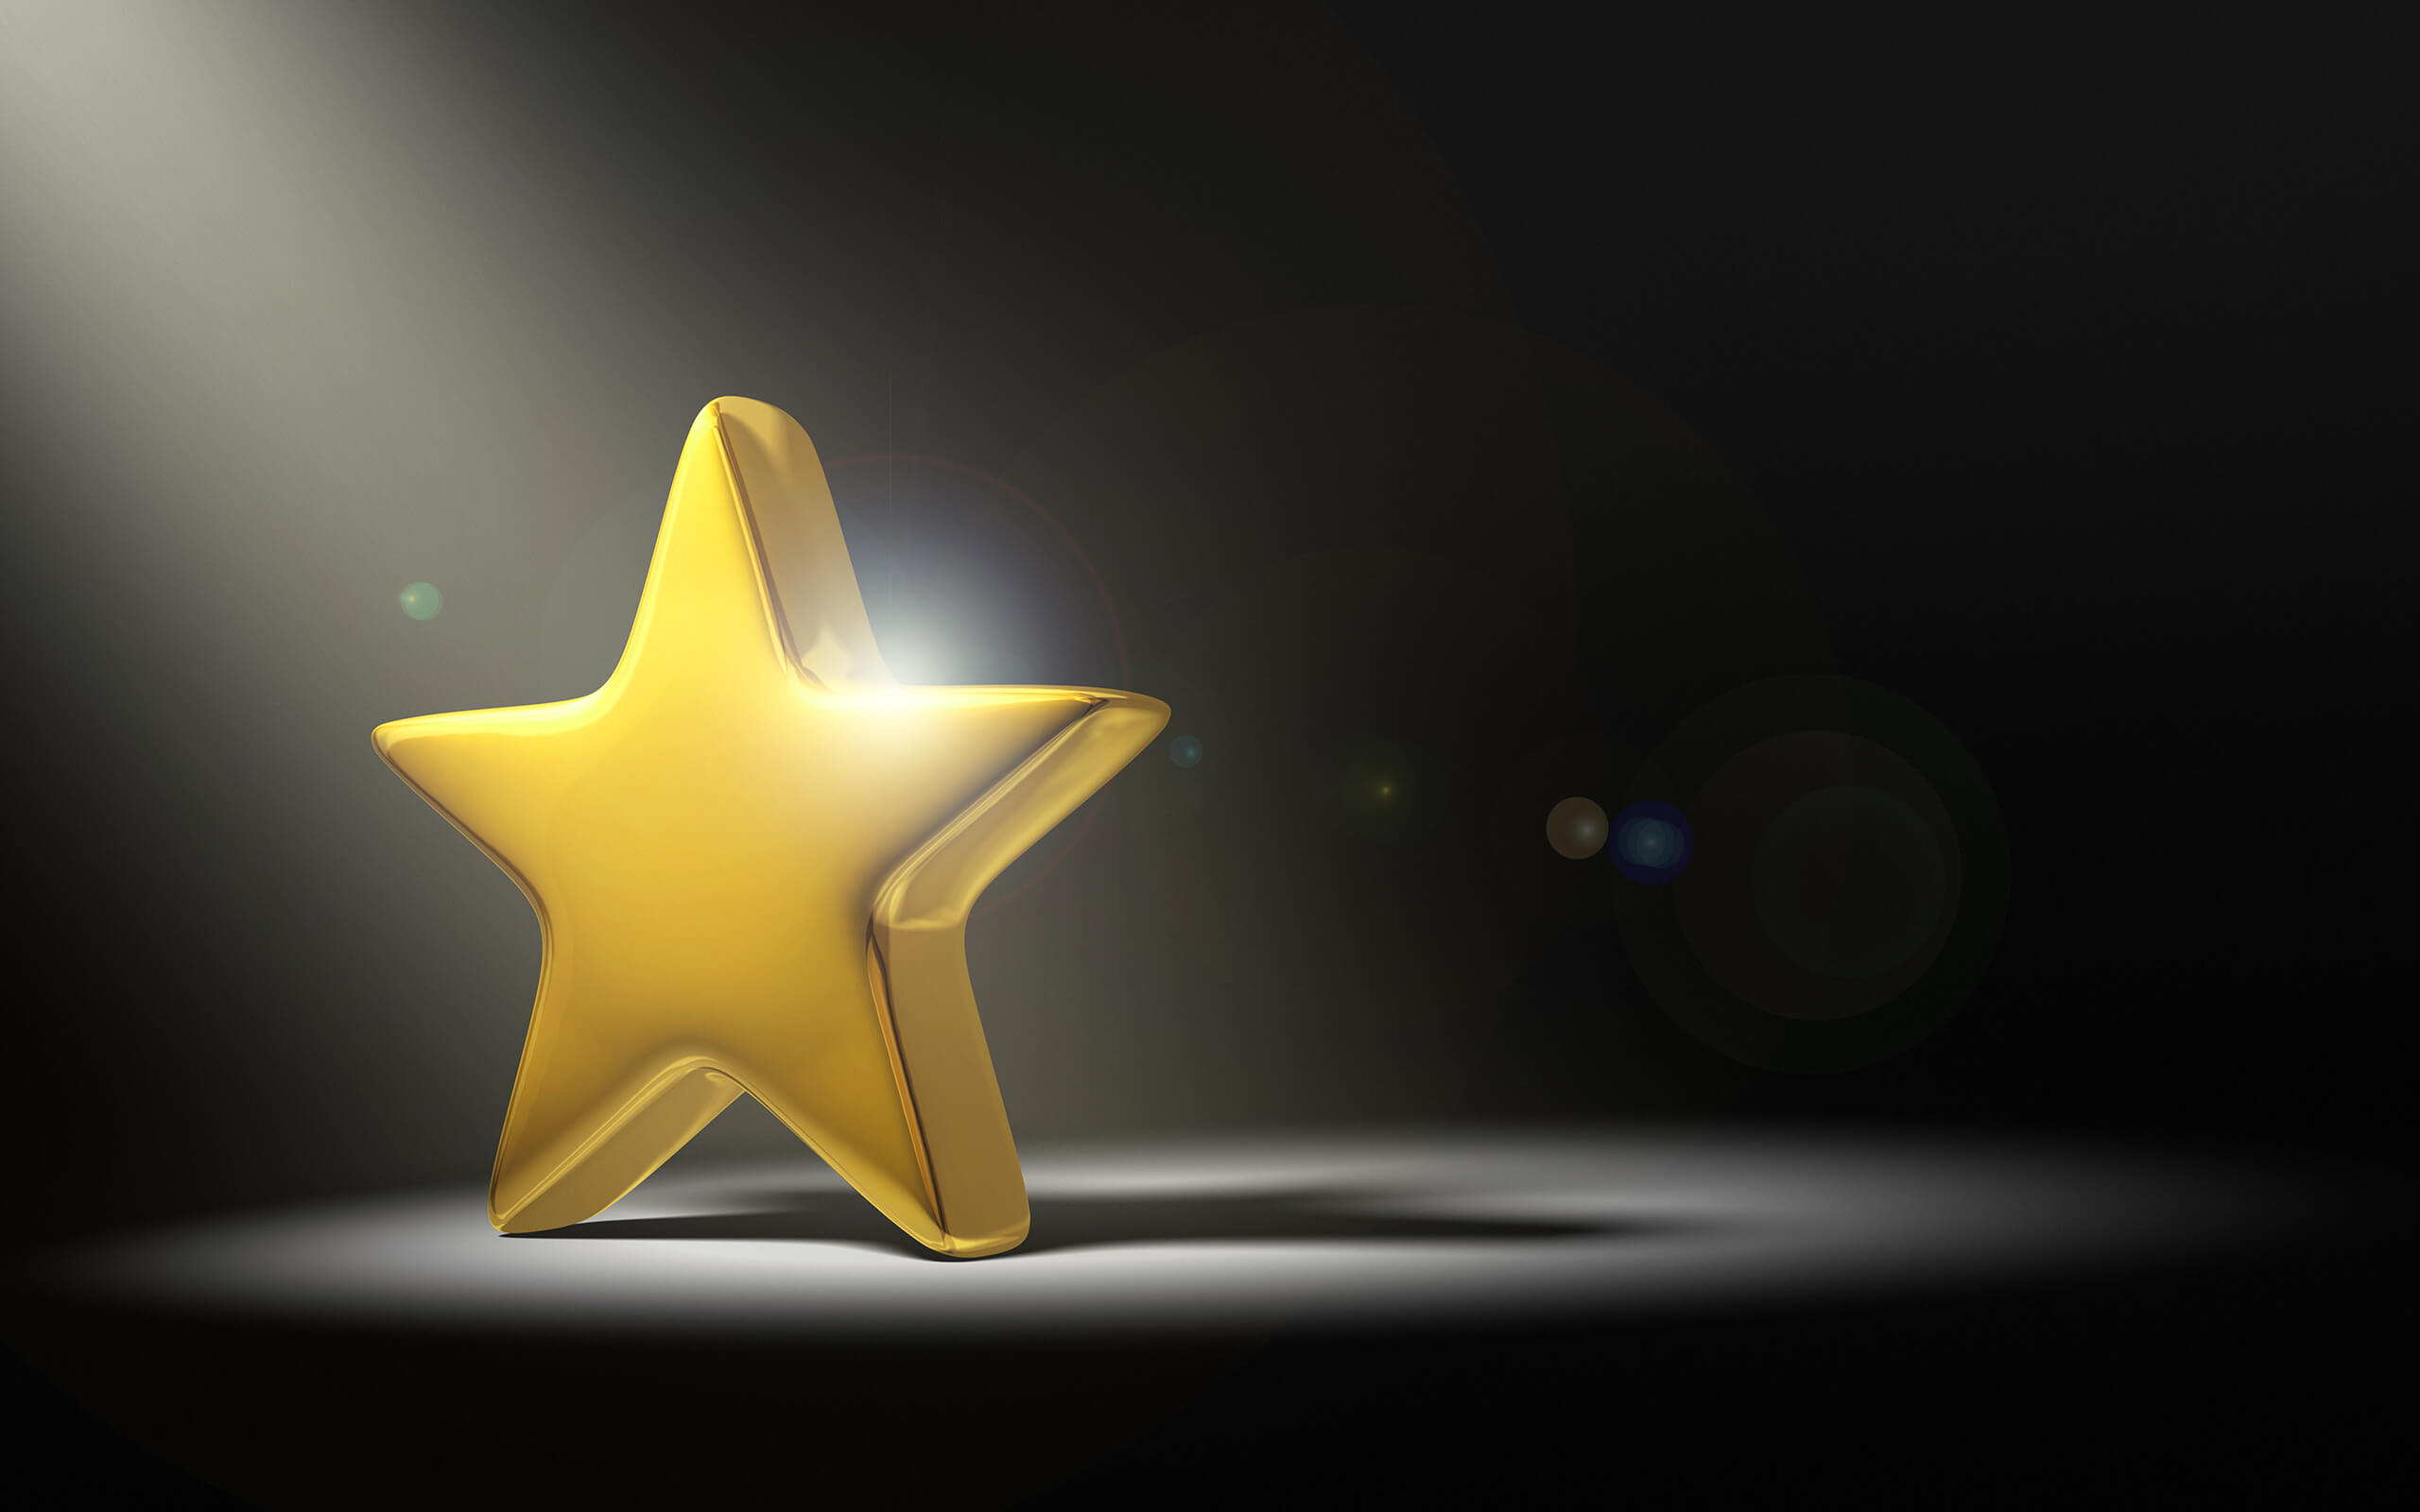 Gold star shining under a spotlight on a black background